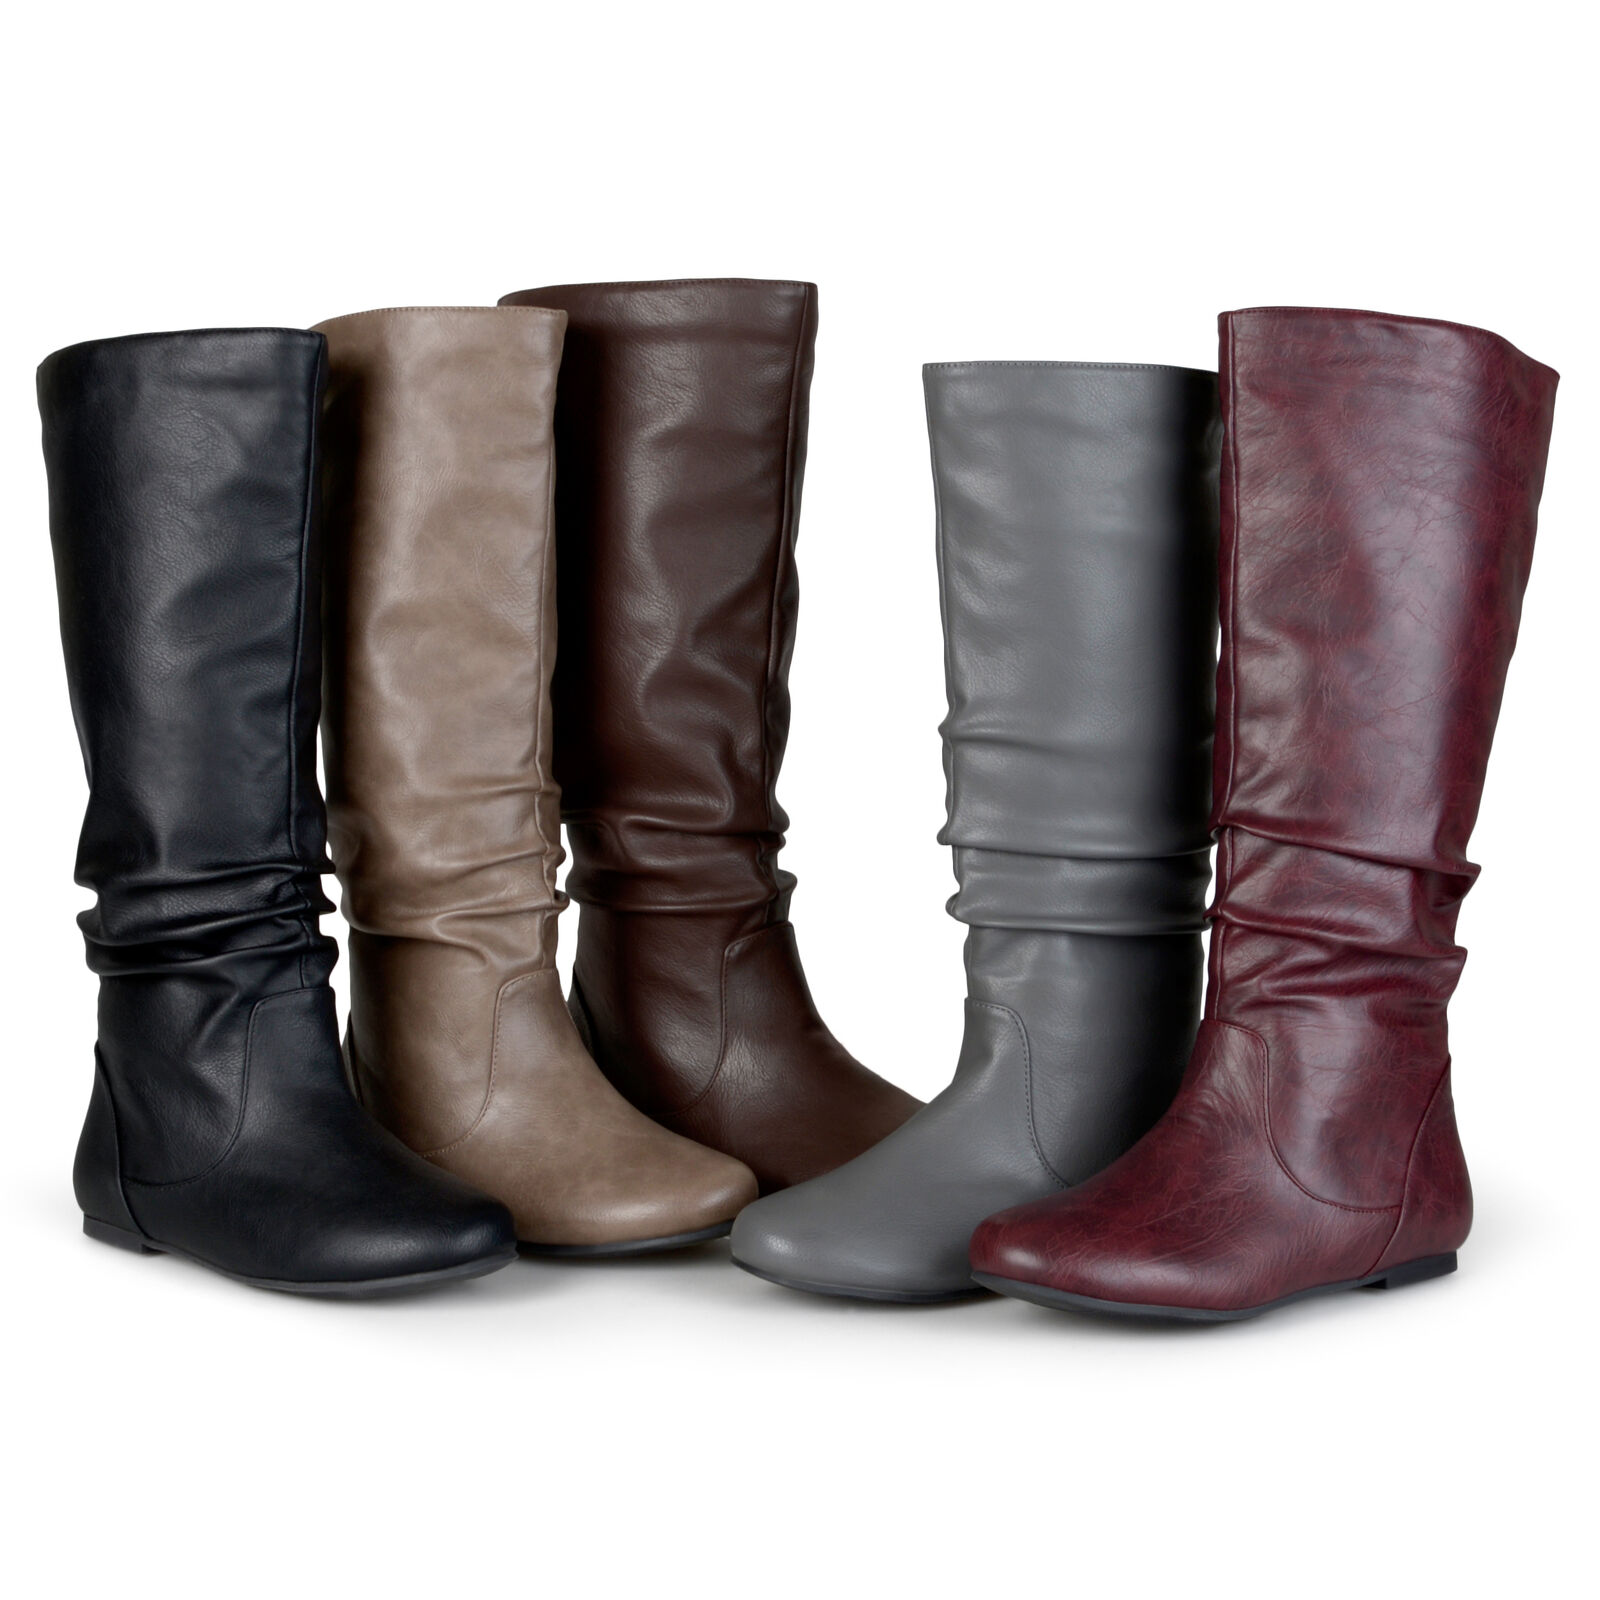 Journee Collection Womens Slouchy Round Toe Boots New